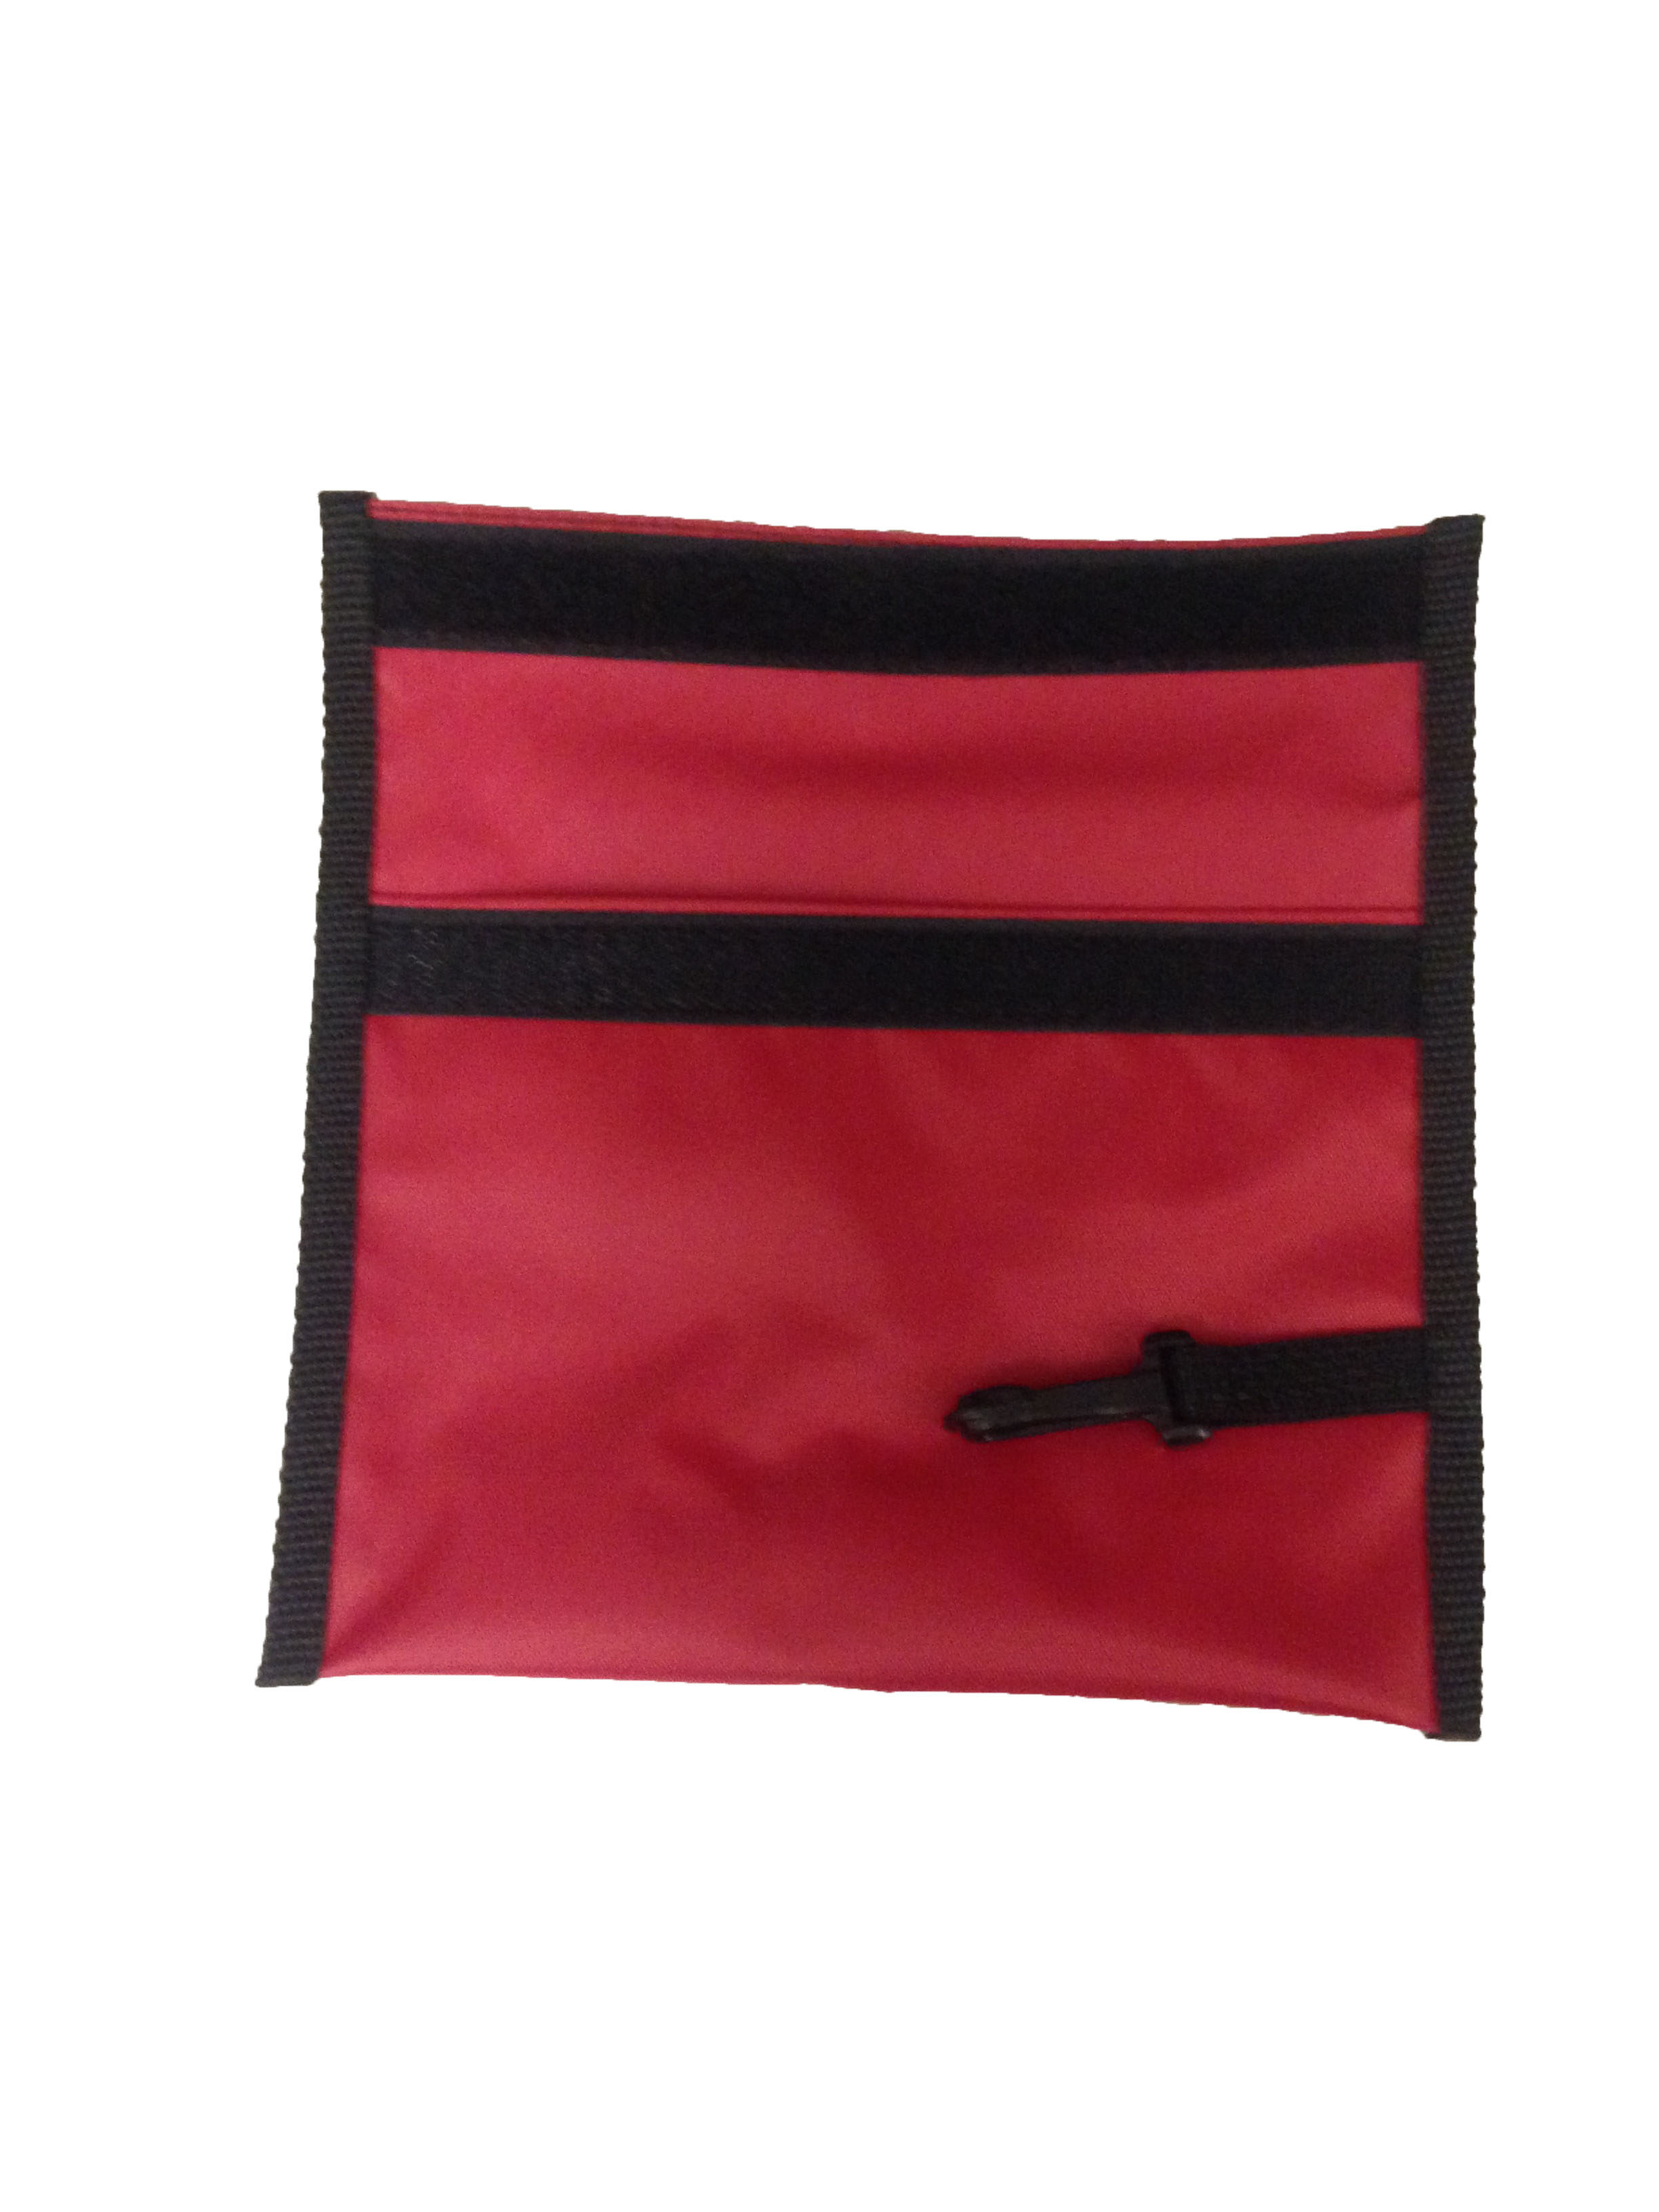 Small First Aid Pouch image